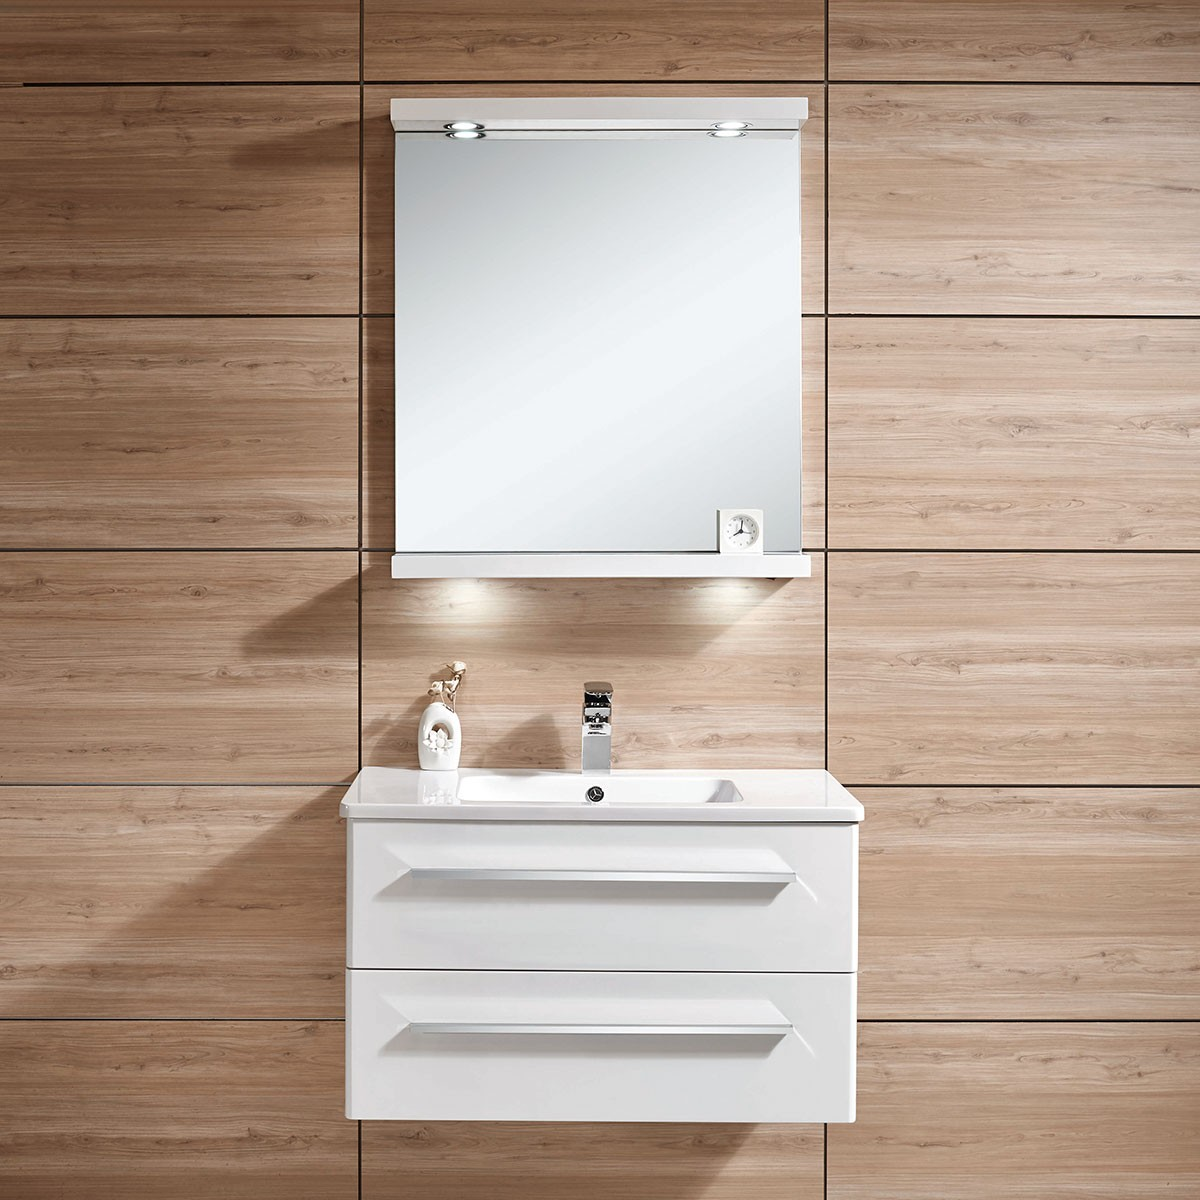 31 In. Wall Mount Bathroom Vanity Set with Mirror and Lamp (DK ...